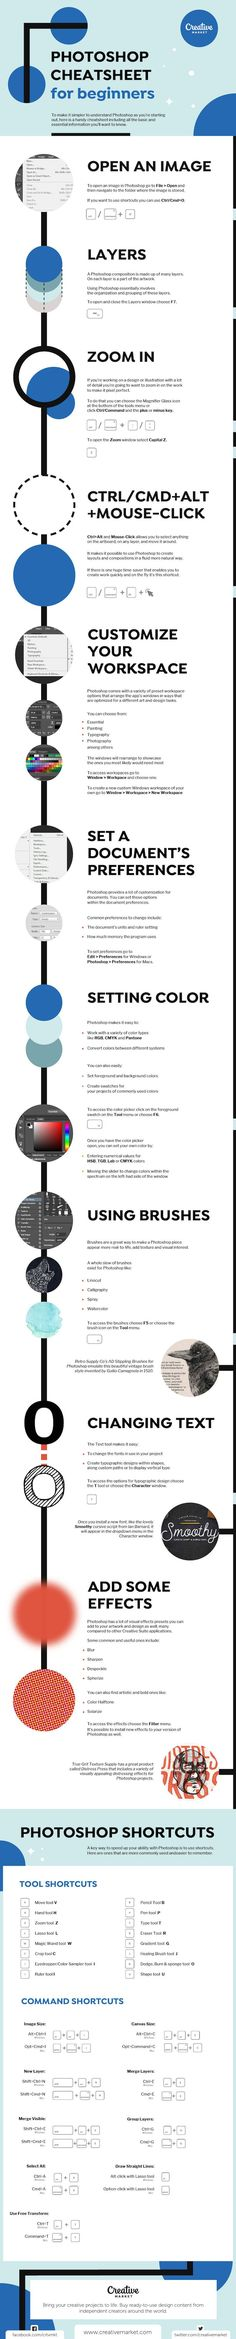 Learn Basic Photoshop Tools And Tricks With This Handy Cheat Sheet For Beginners